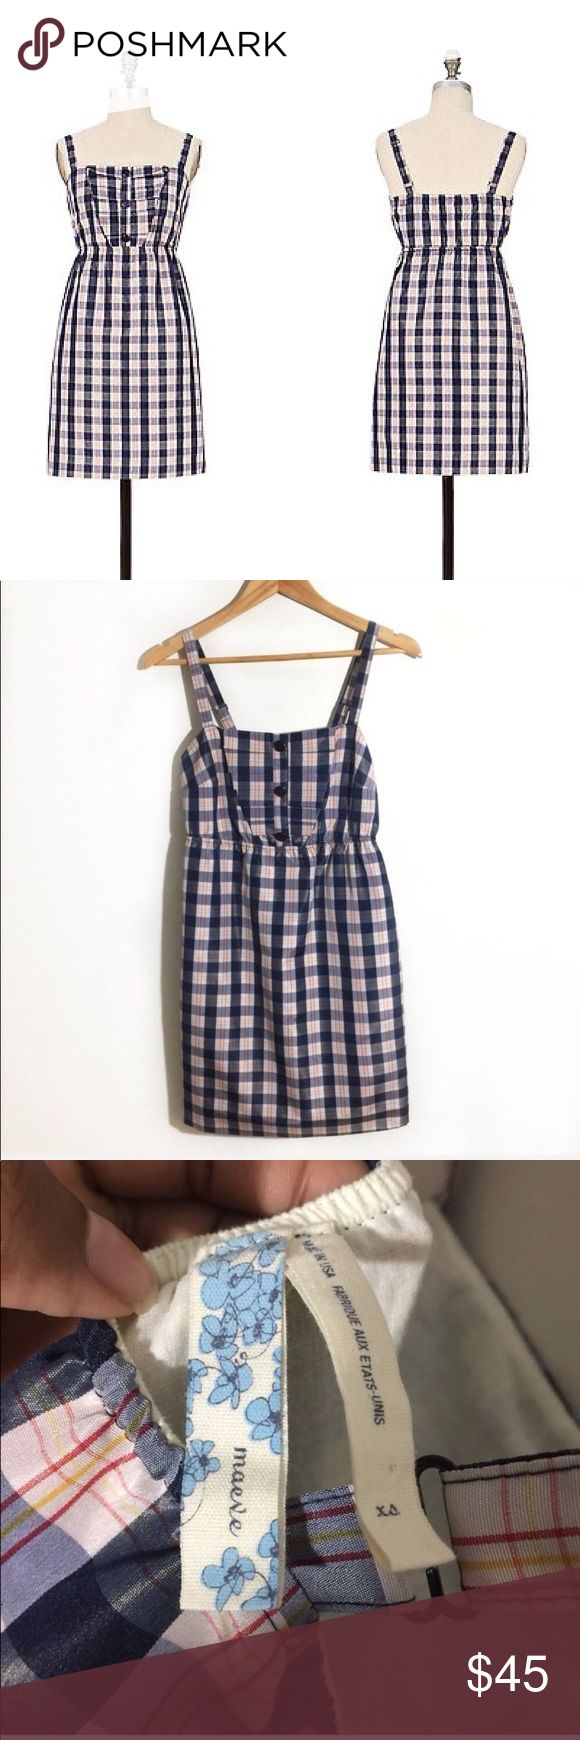 Anthropologie Maeve Outshine Taffeta Dress XS Anthropologie brand Maeve Outshine frock Dress. Size XS. Pretty plaid blue red and white grid pattern. Lined. Excellent preowned condition Anthropologie Dresses